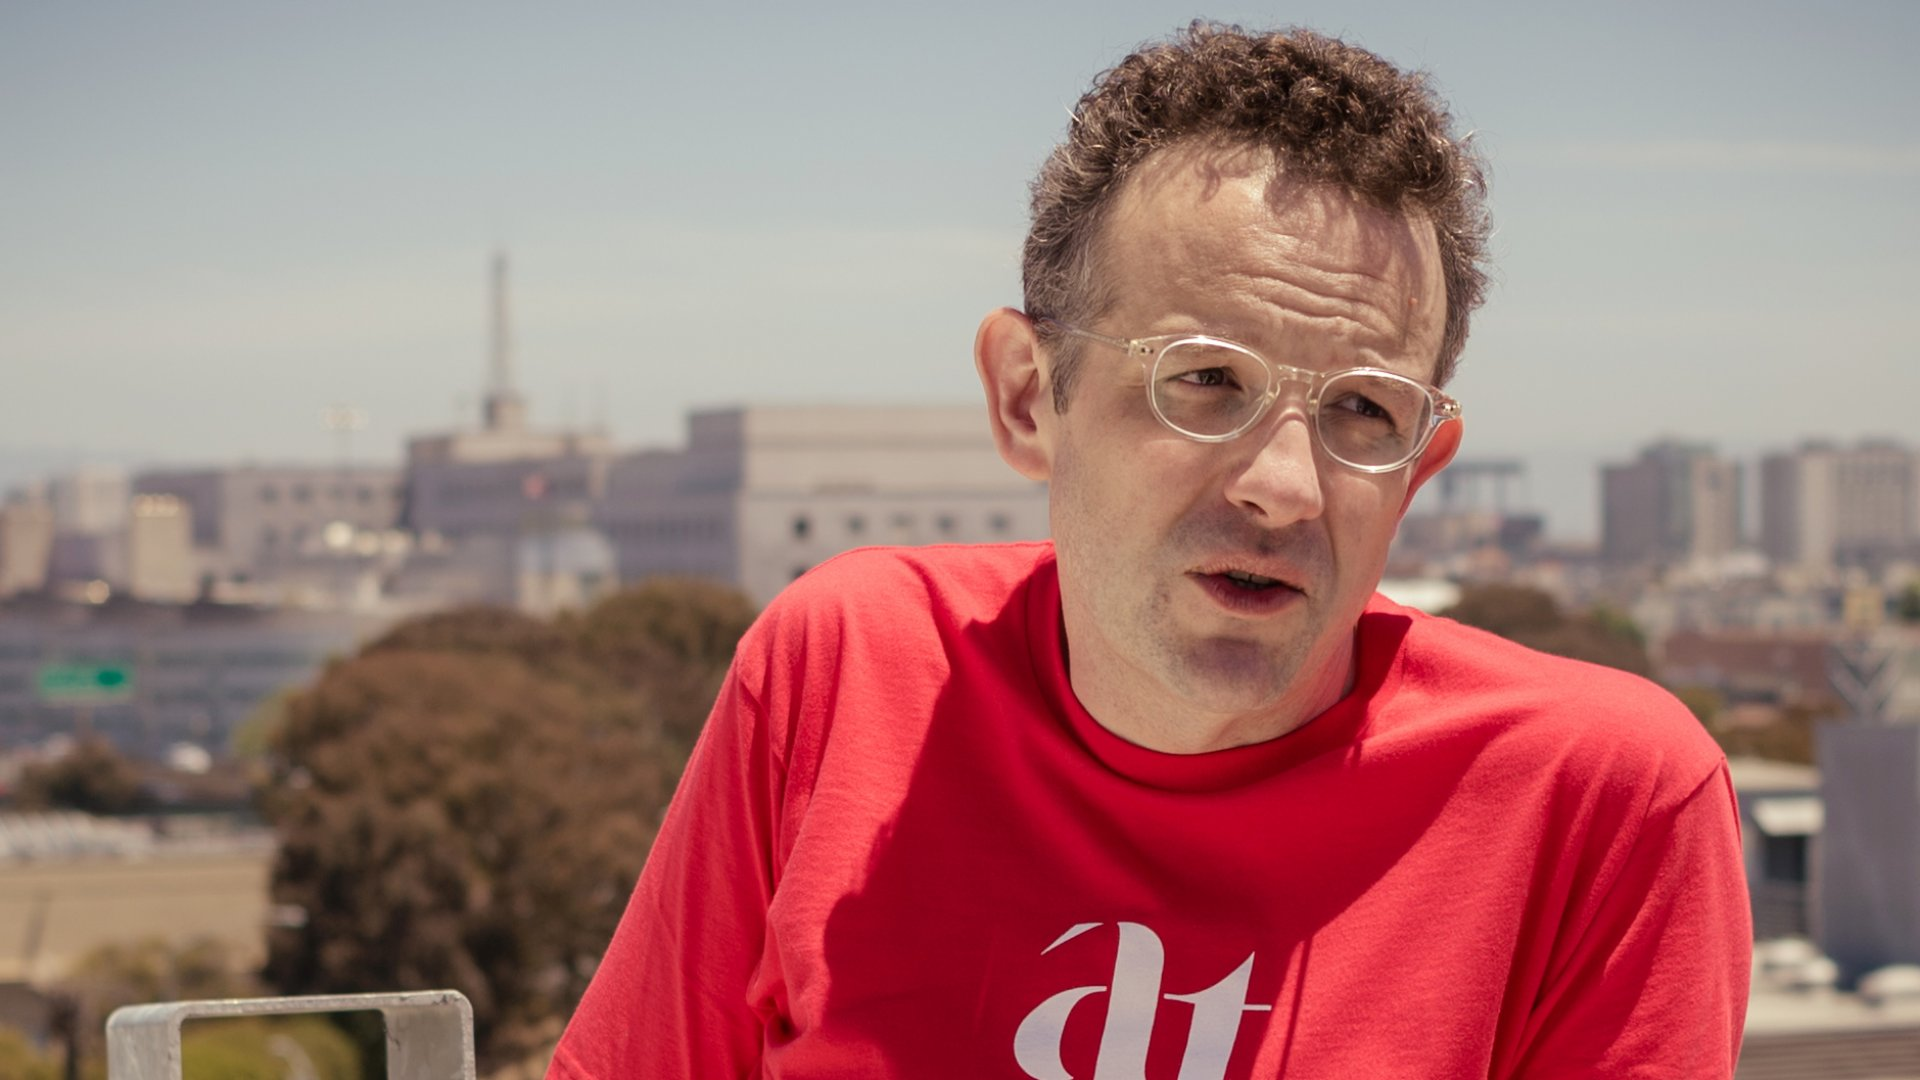 I Had Job Burnout. Then 3 Words From Phil Libin Helped Me Start My Own Company